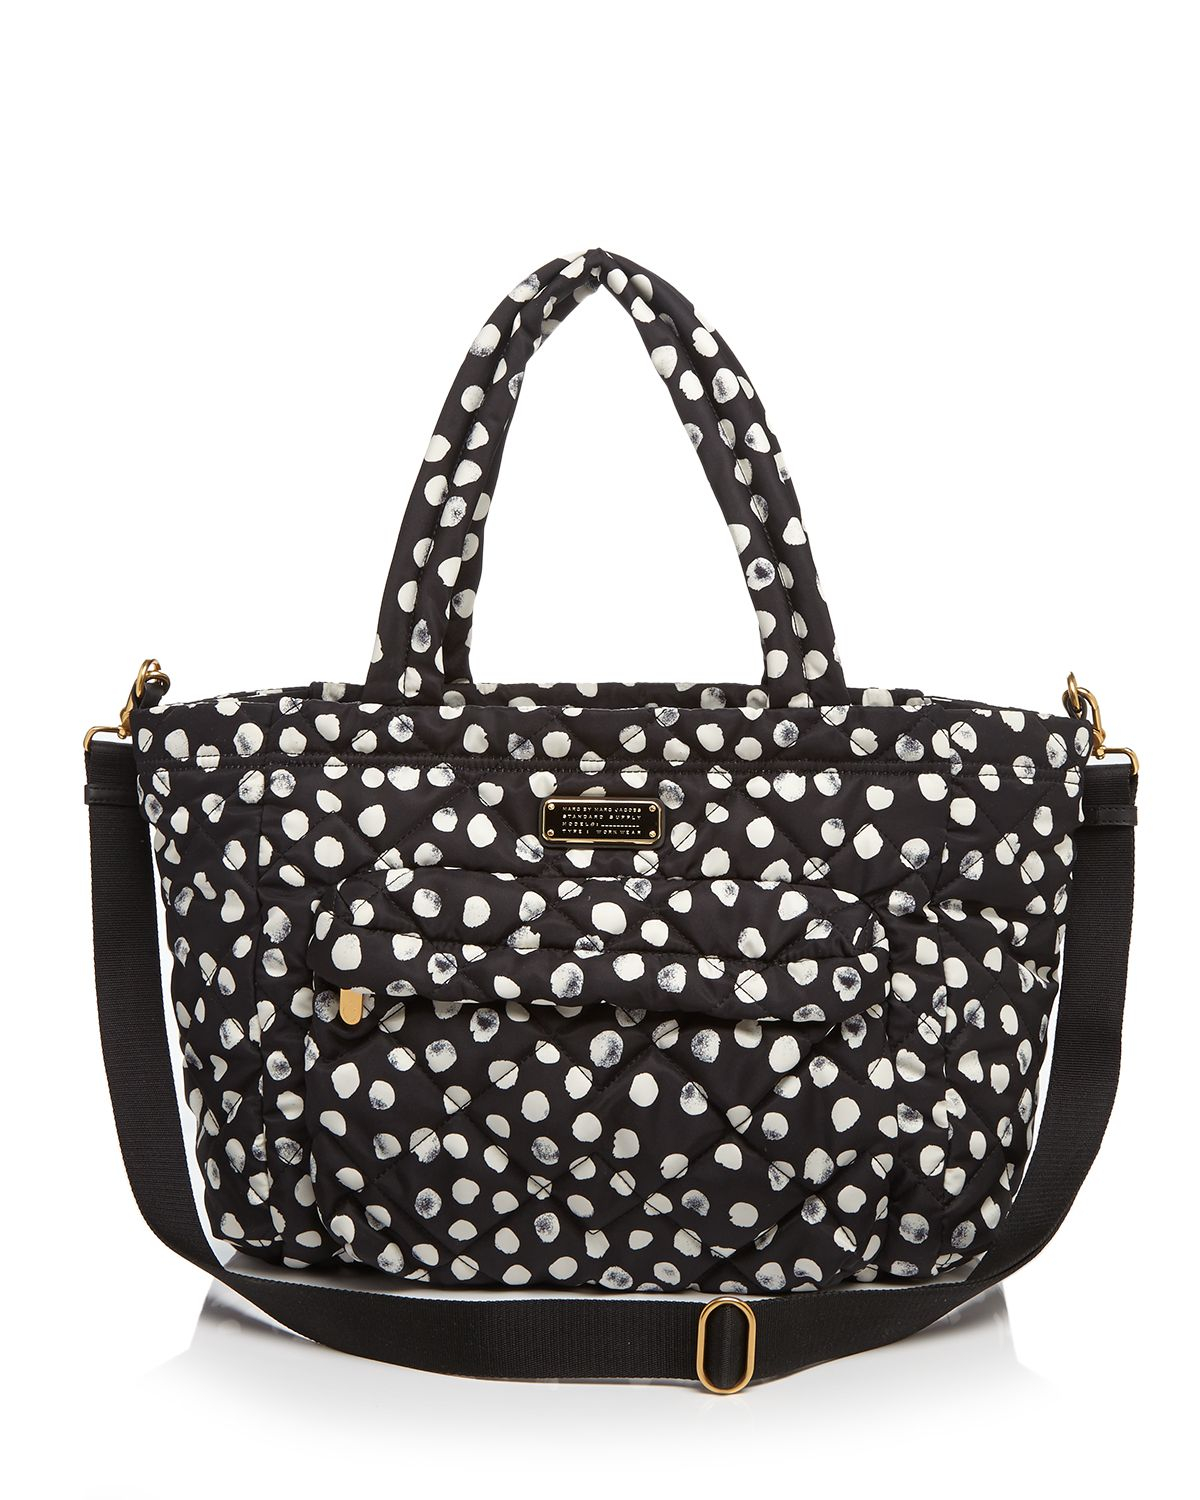 marc by marc jacobs diaper bag crosby quilt elizababy in black lyst. Black Bedroom Furniture Sets. Home Design Ideas